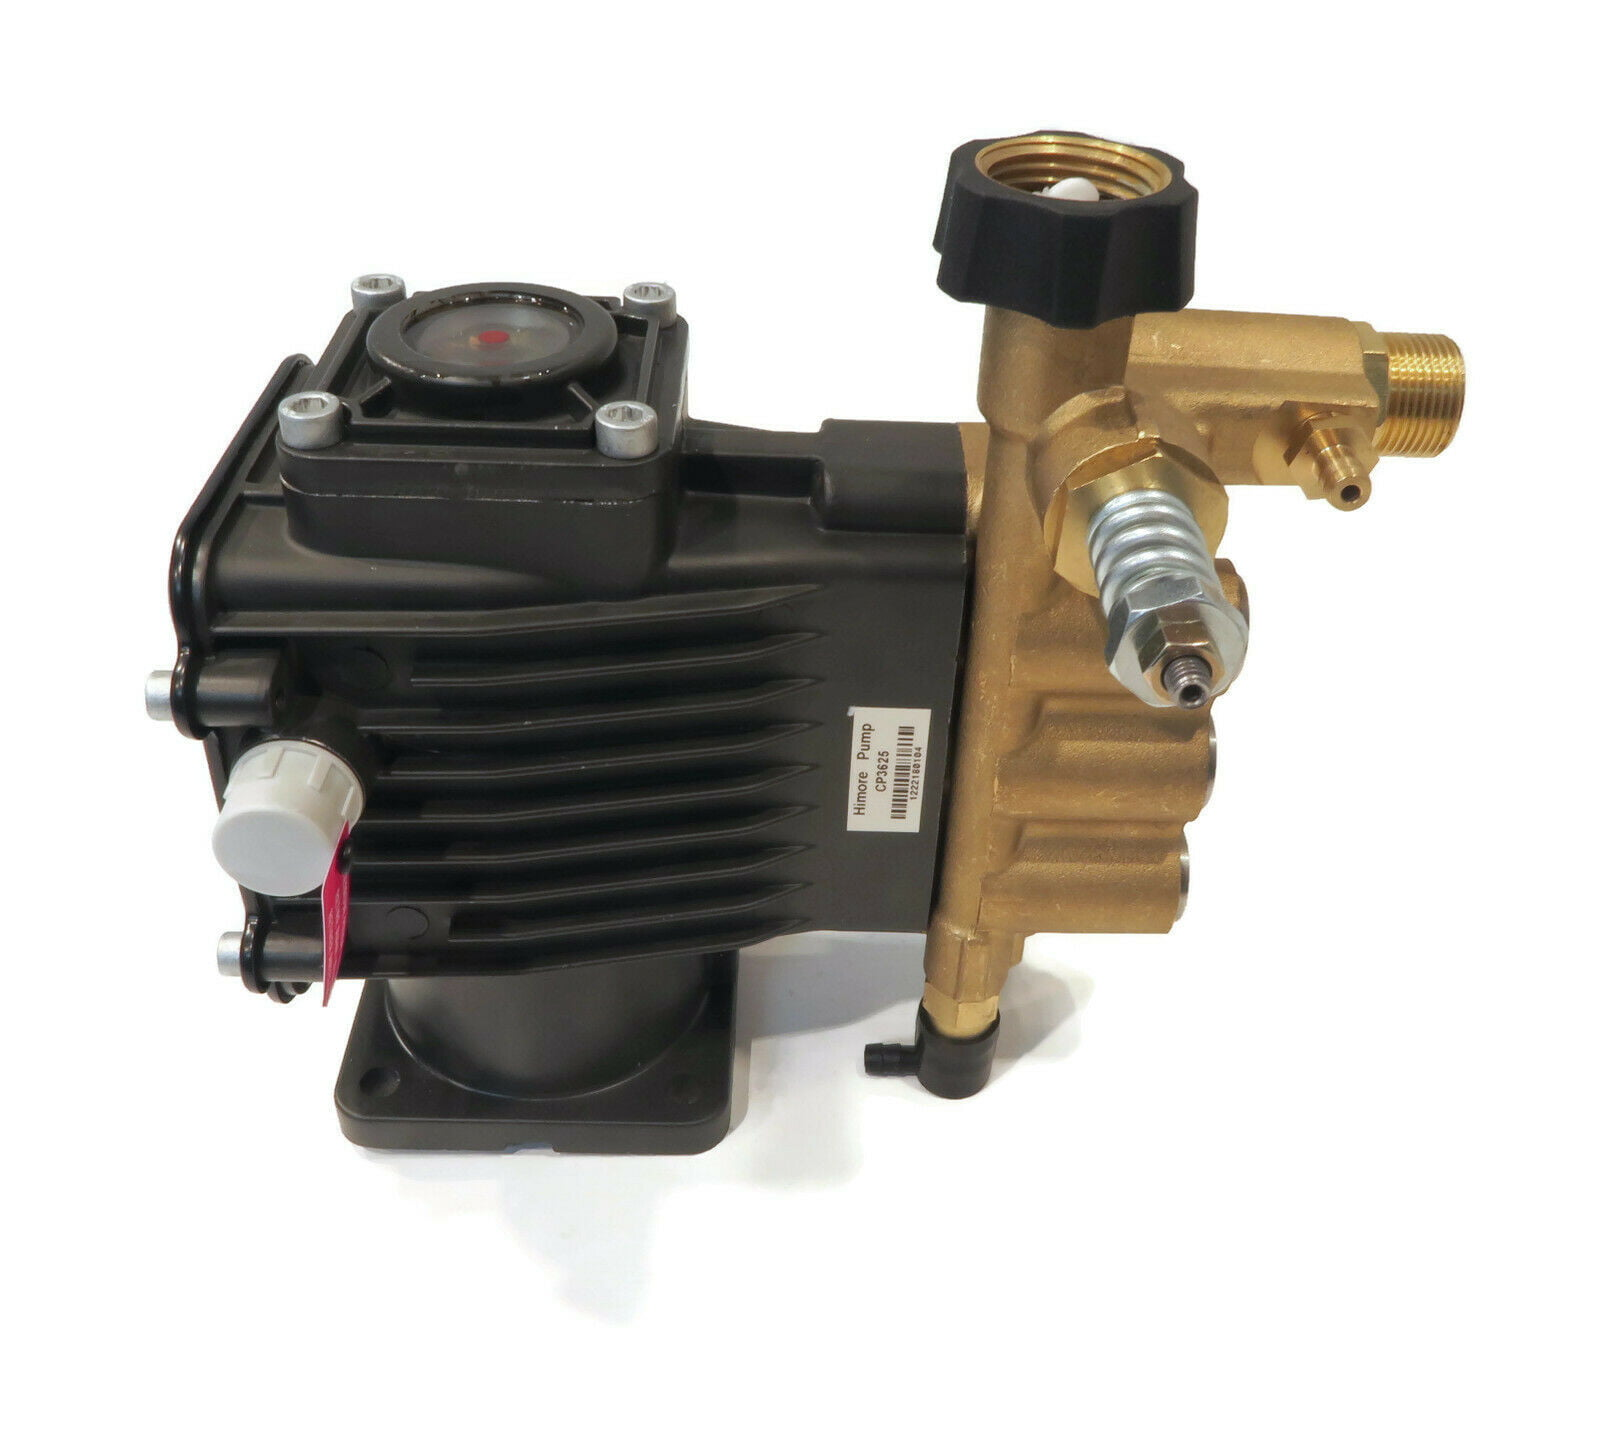 6.5 HP for AR RCV3G25D-F7 RSV3G25D-F25 3600 PSI Pressure Washer Pump 2.5 GPM